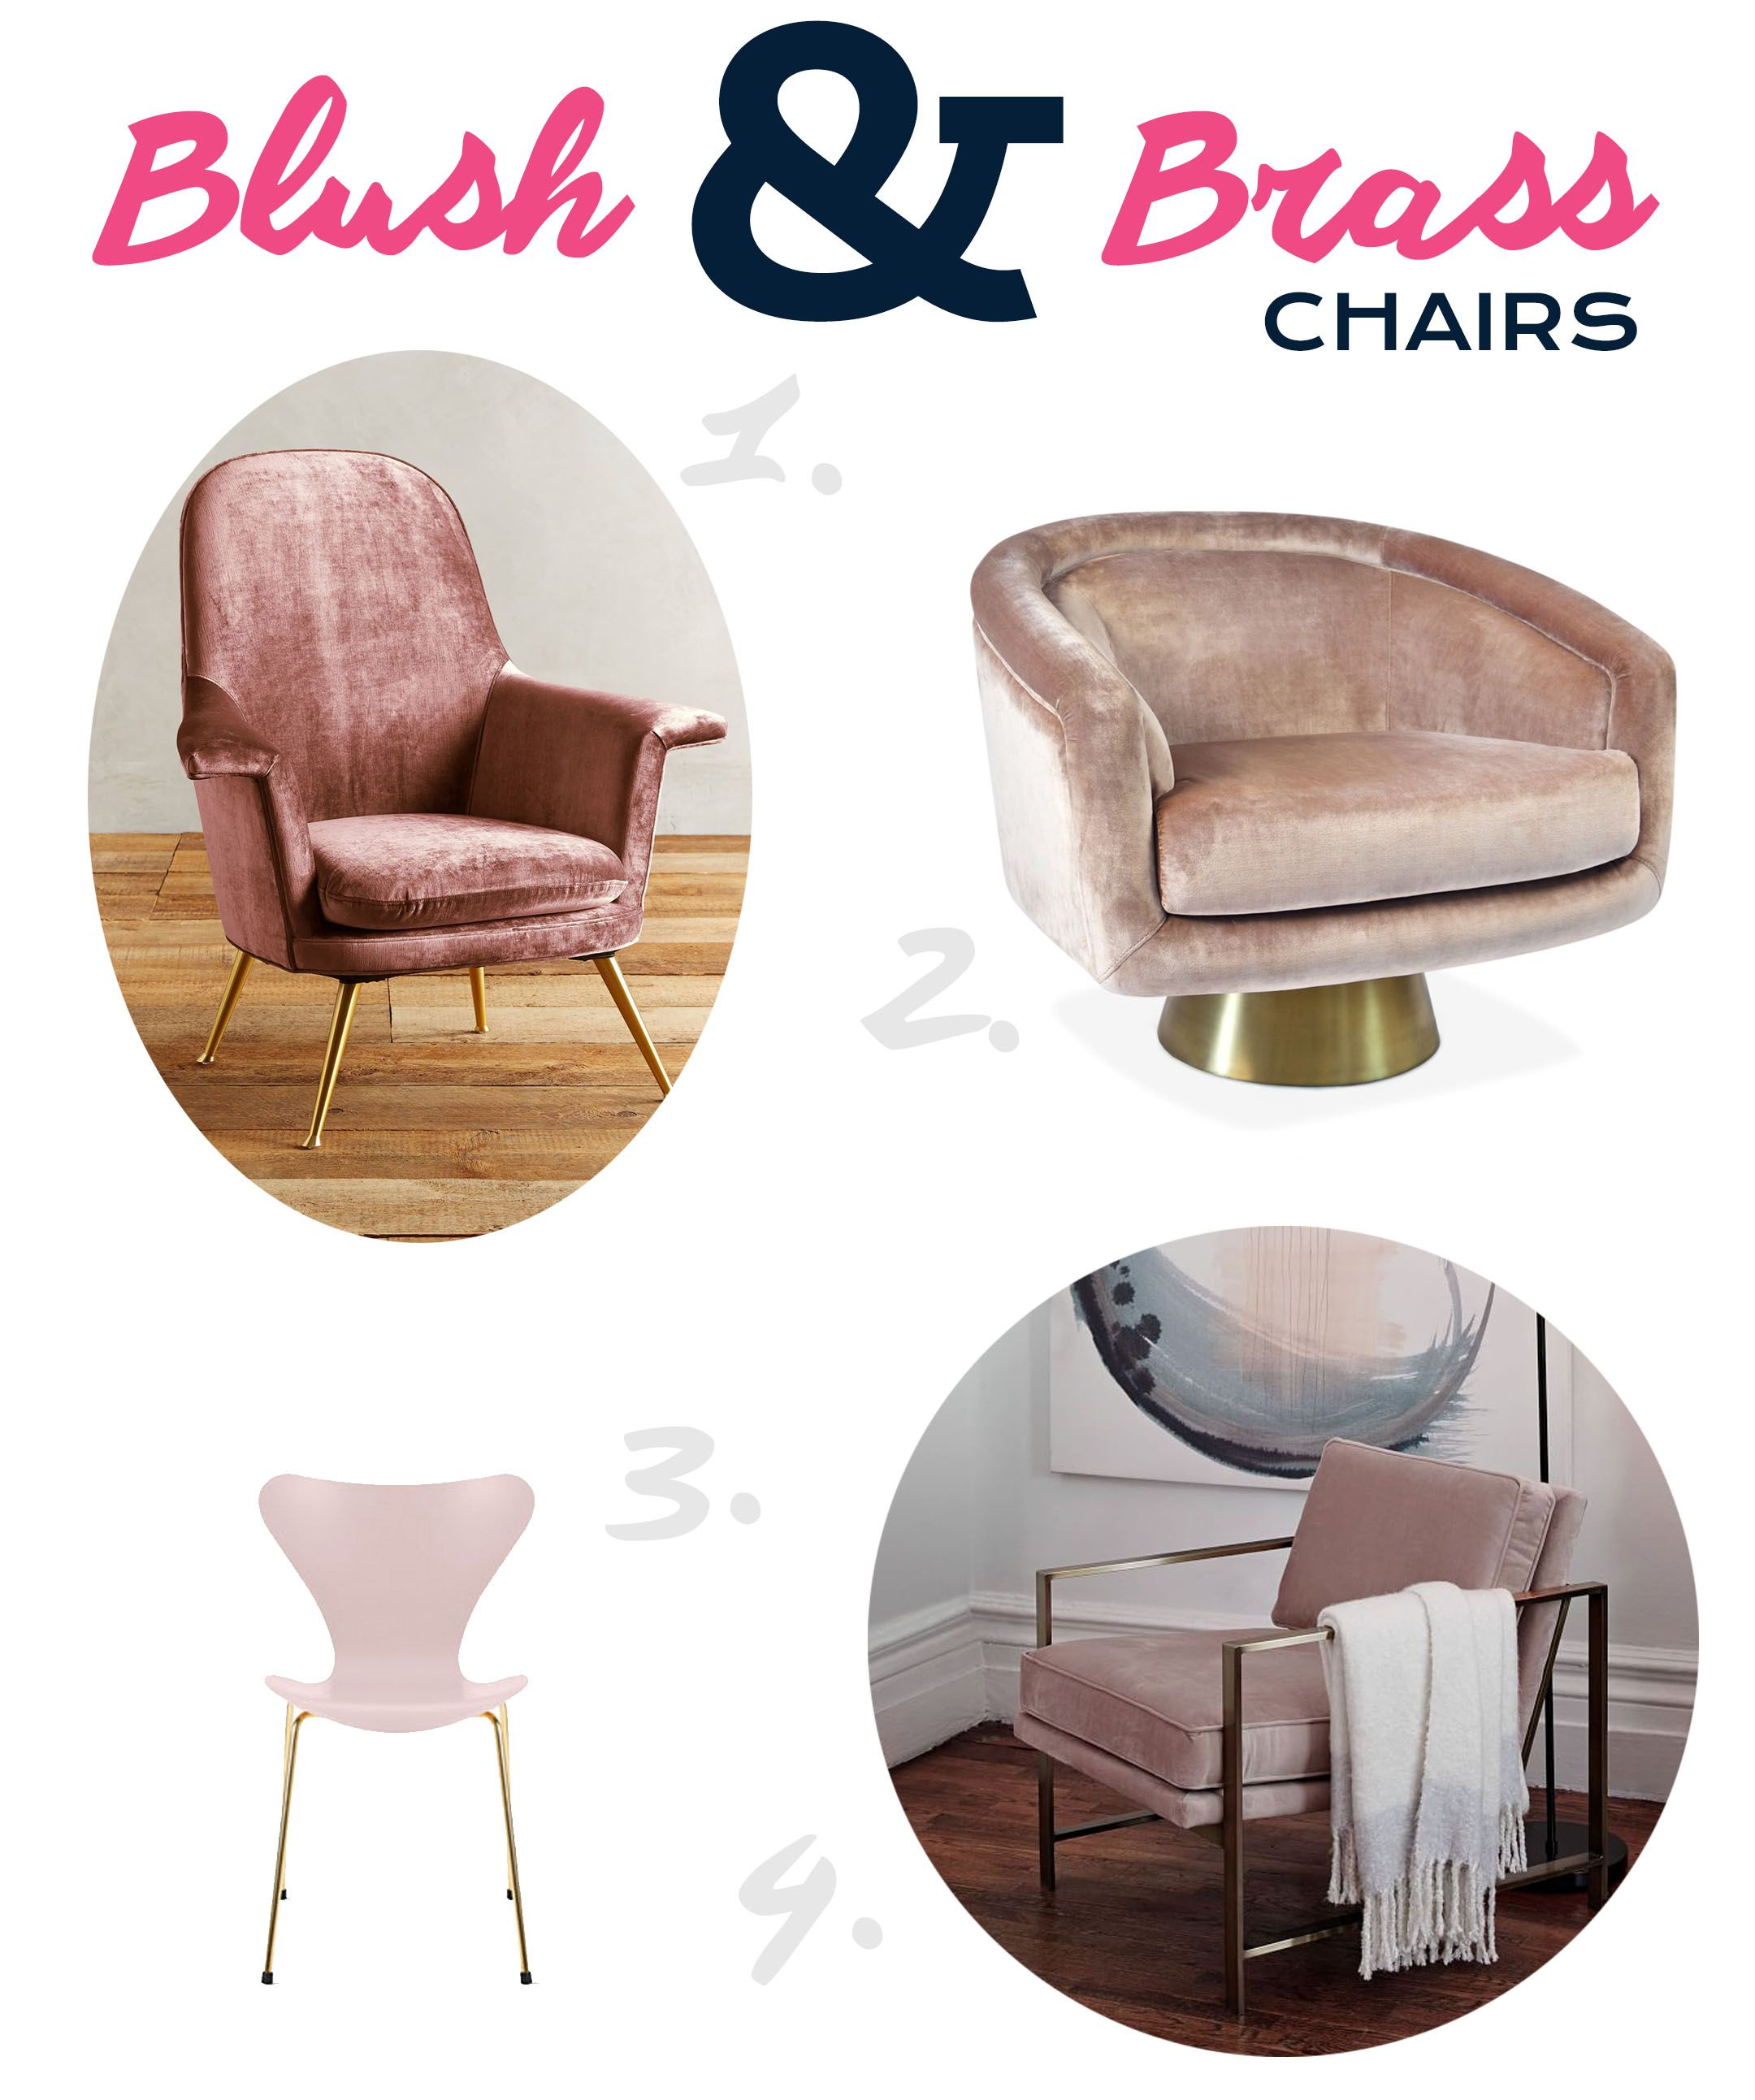 A selection of blush pink and brass chairs. Featuring chairs from Jonathan Adler, Anthropologie, and West Elm. Would this look good with a teal couch?